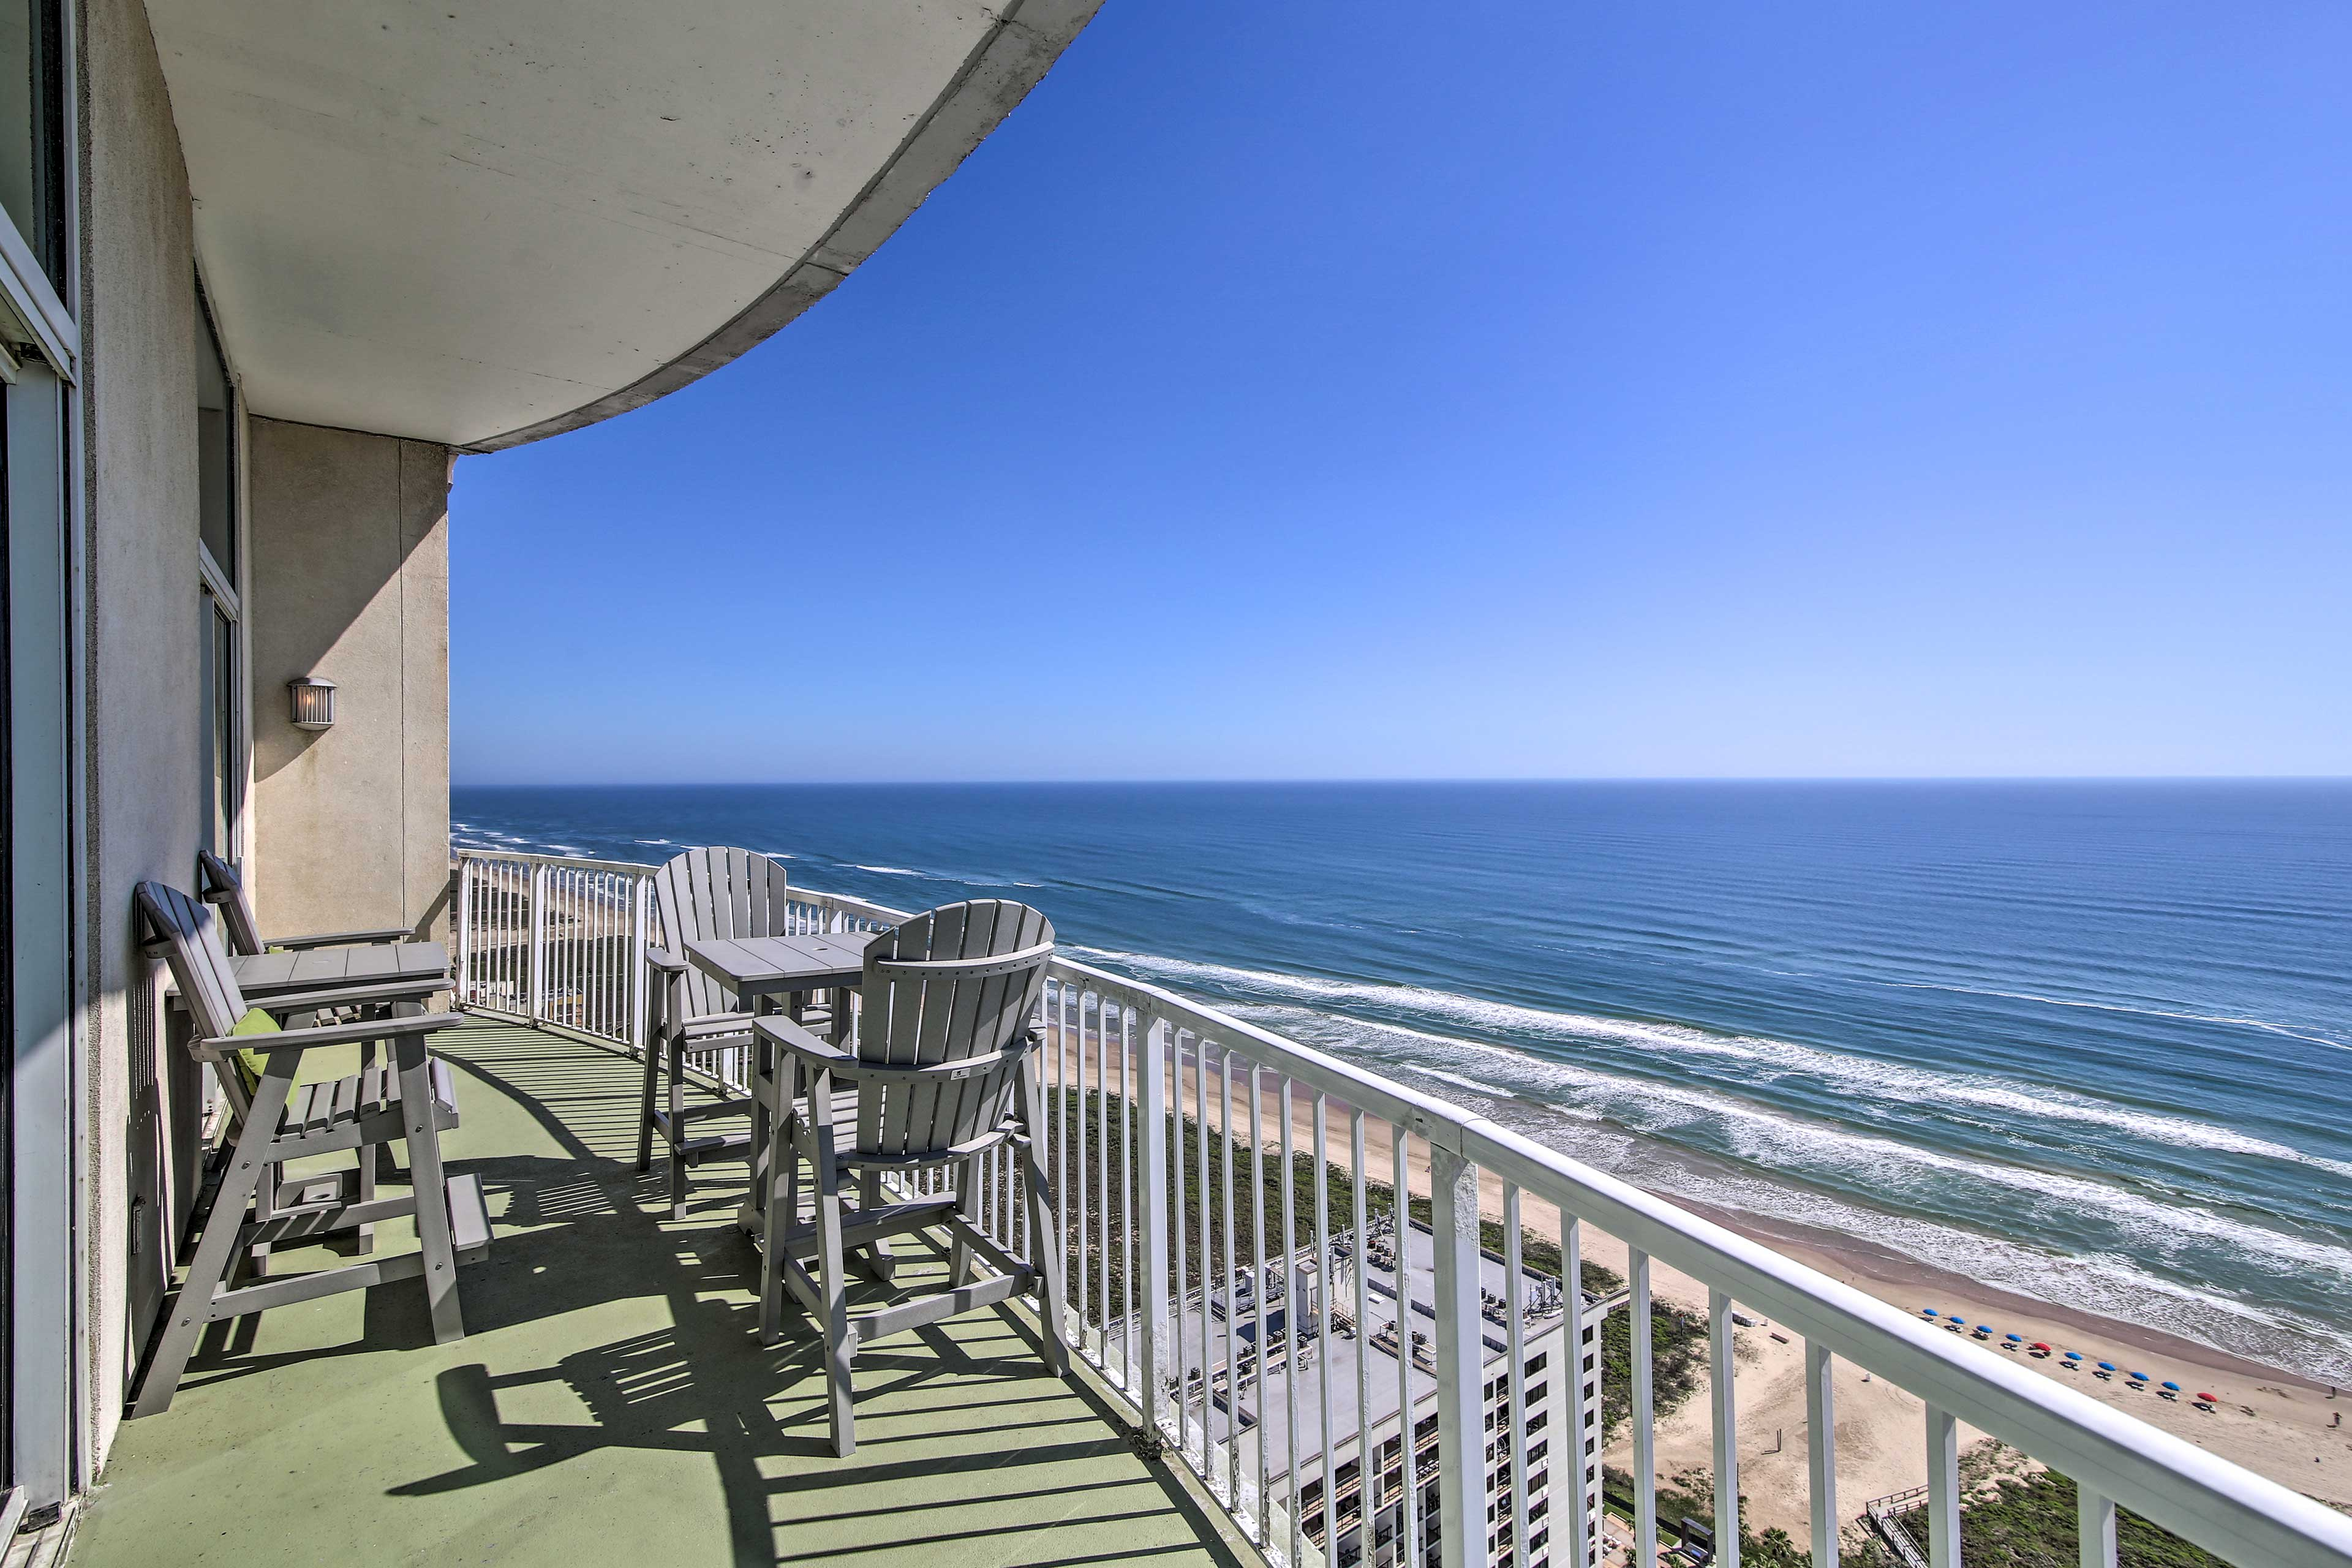 Need fresh air? Step outside for panoramic views of the beach and ocean!